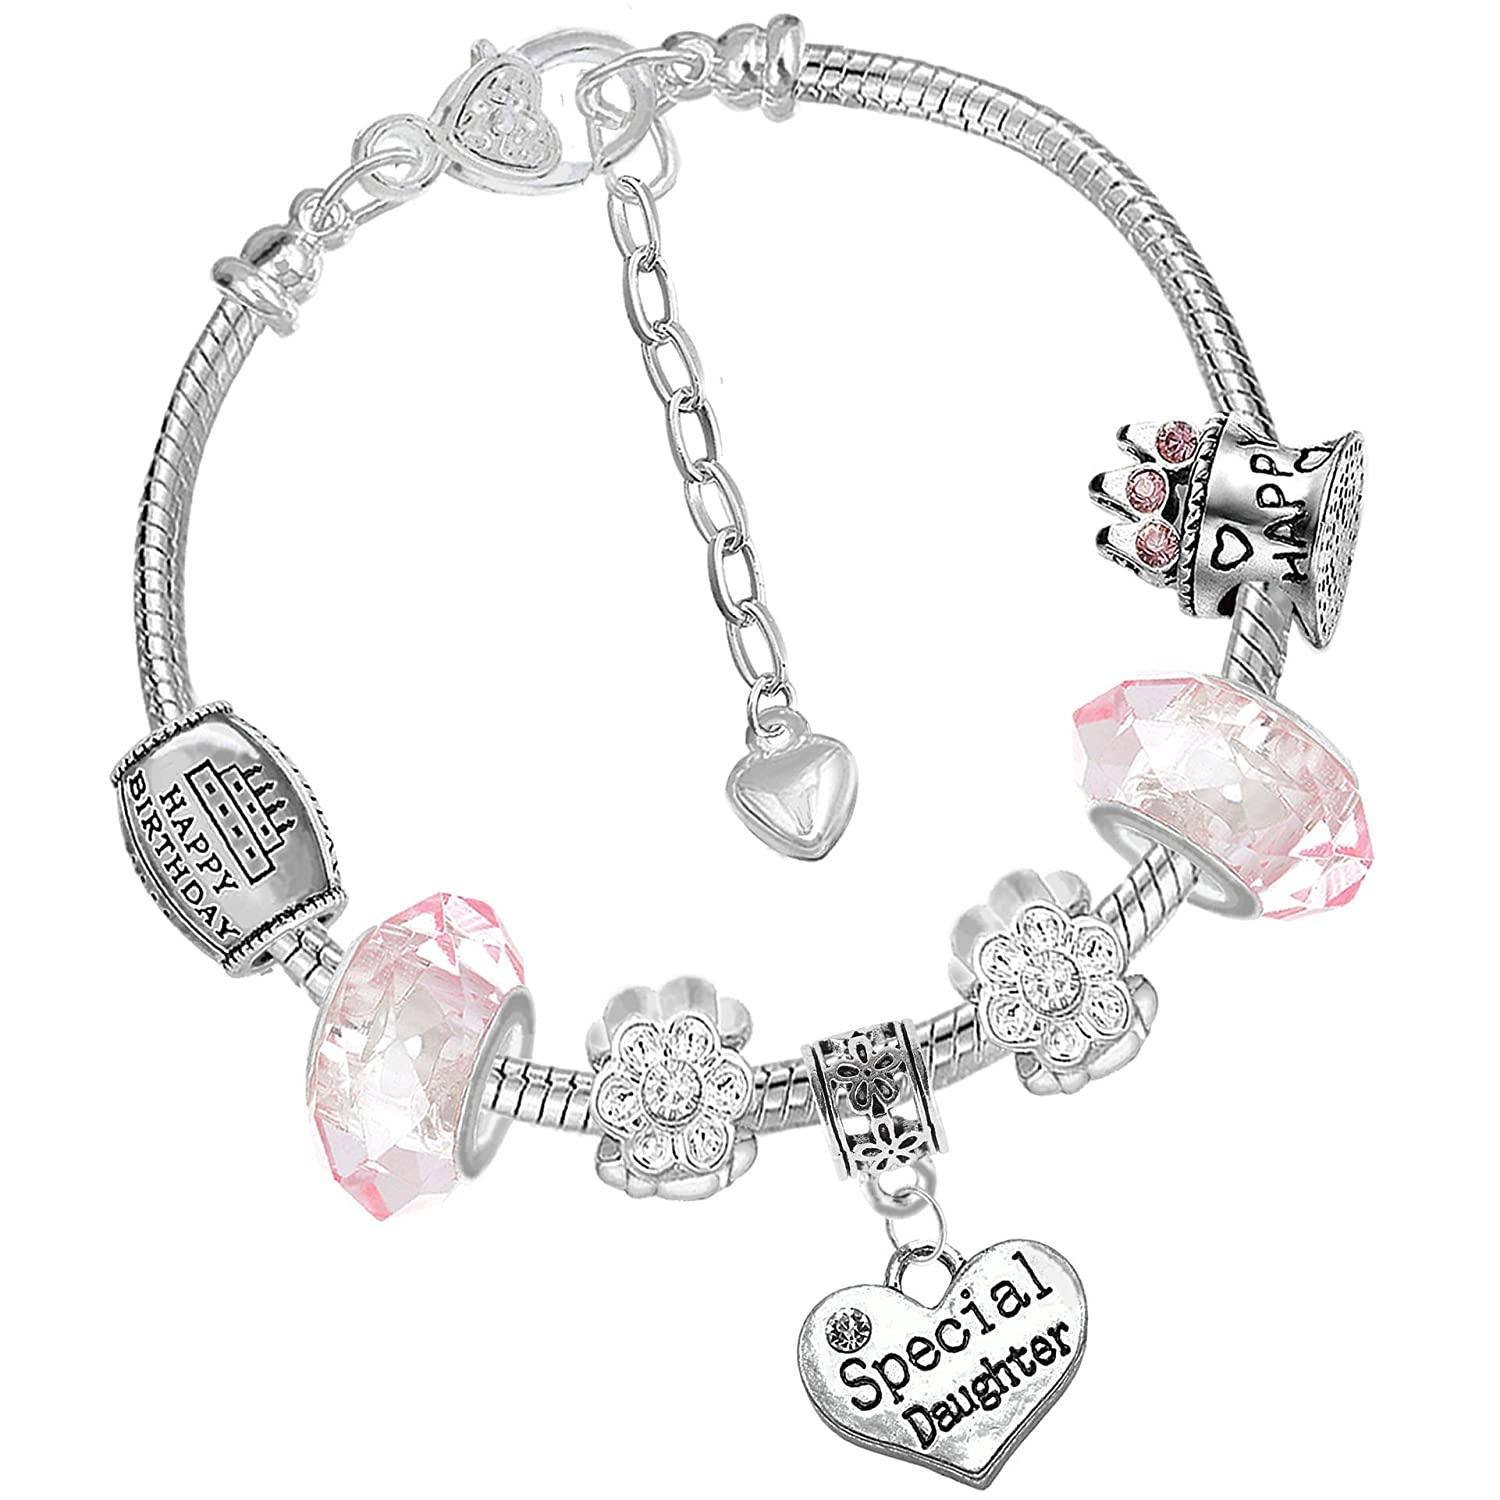 Special Daughter Girls Pink Crystal Charm Bracelet and Birthday Card Gift Box Set Charm Buddy Charm Buddy ® NXG-HBA-1 Ch-3 Q-39.